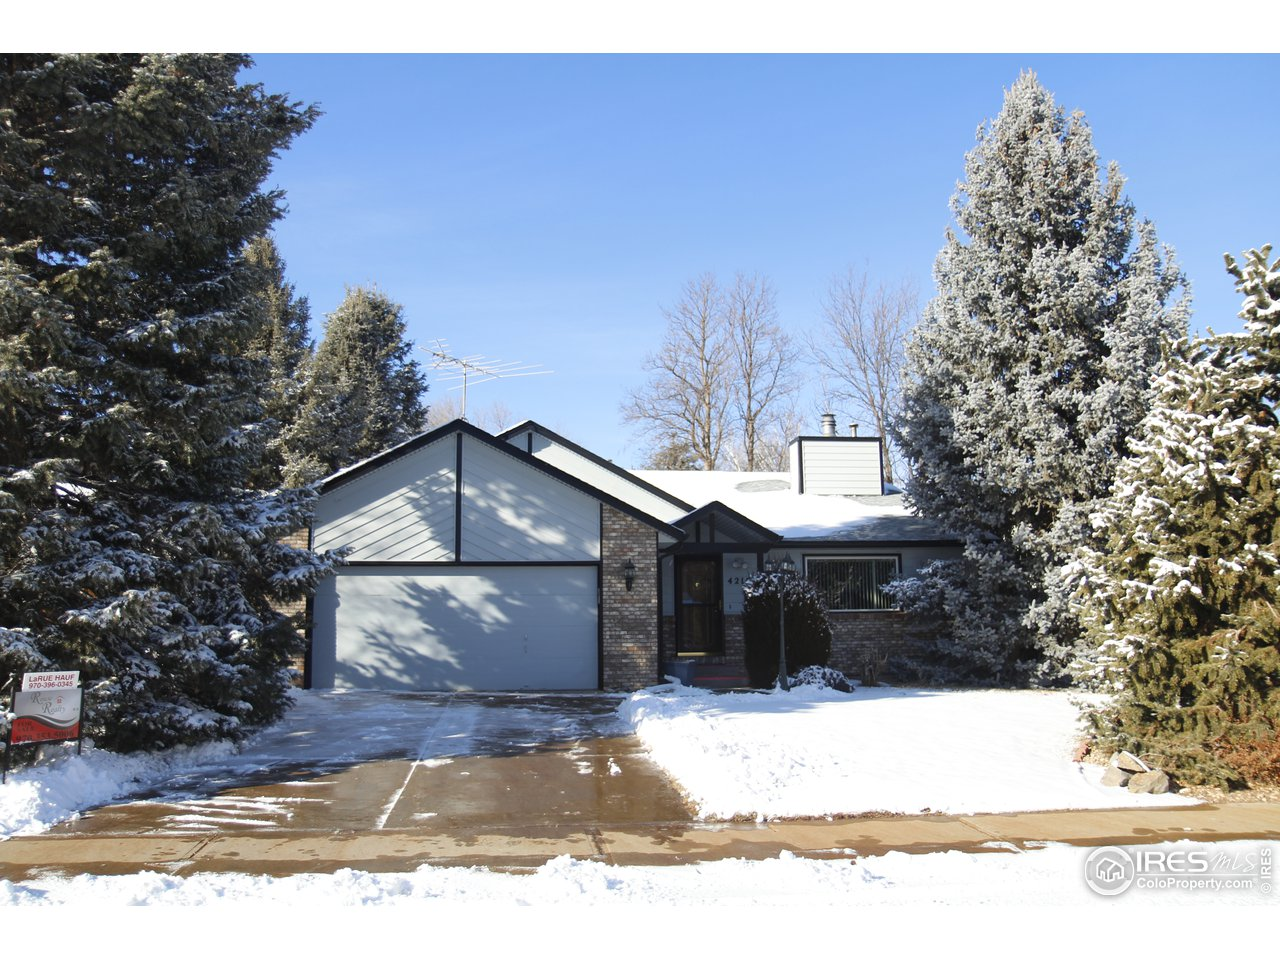 4215 W 22ND ST RD, GREELEY, CO 80634